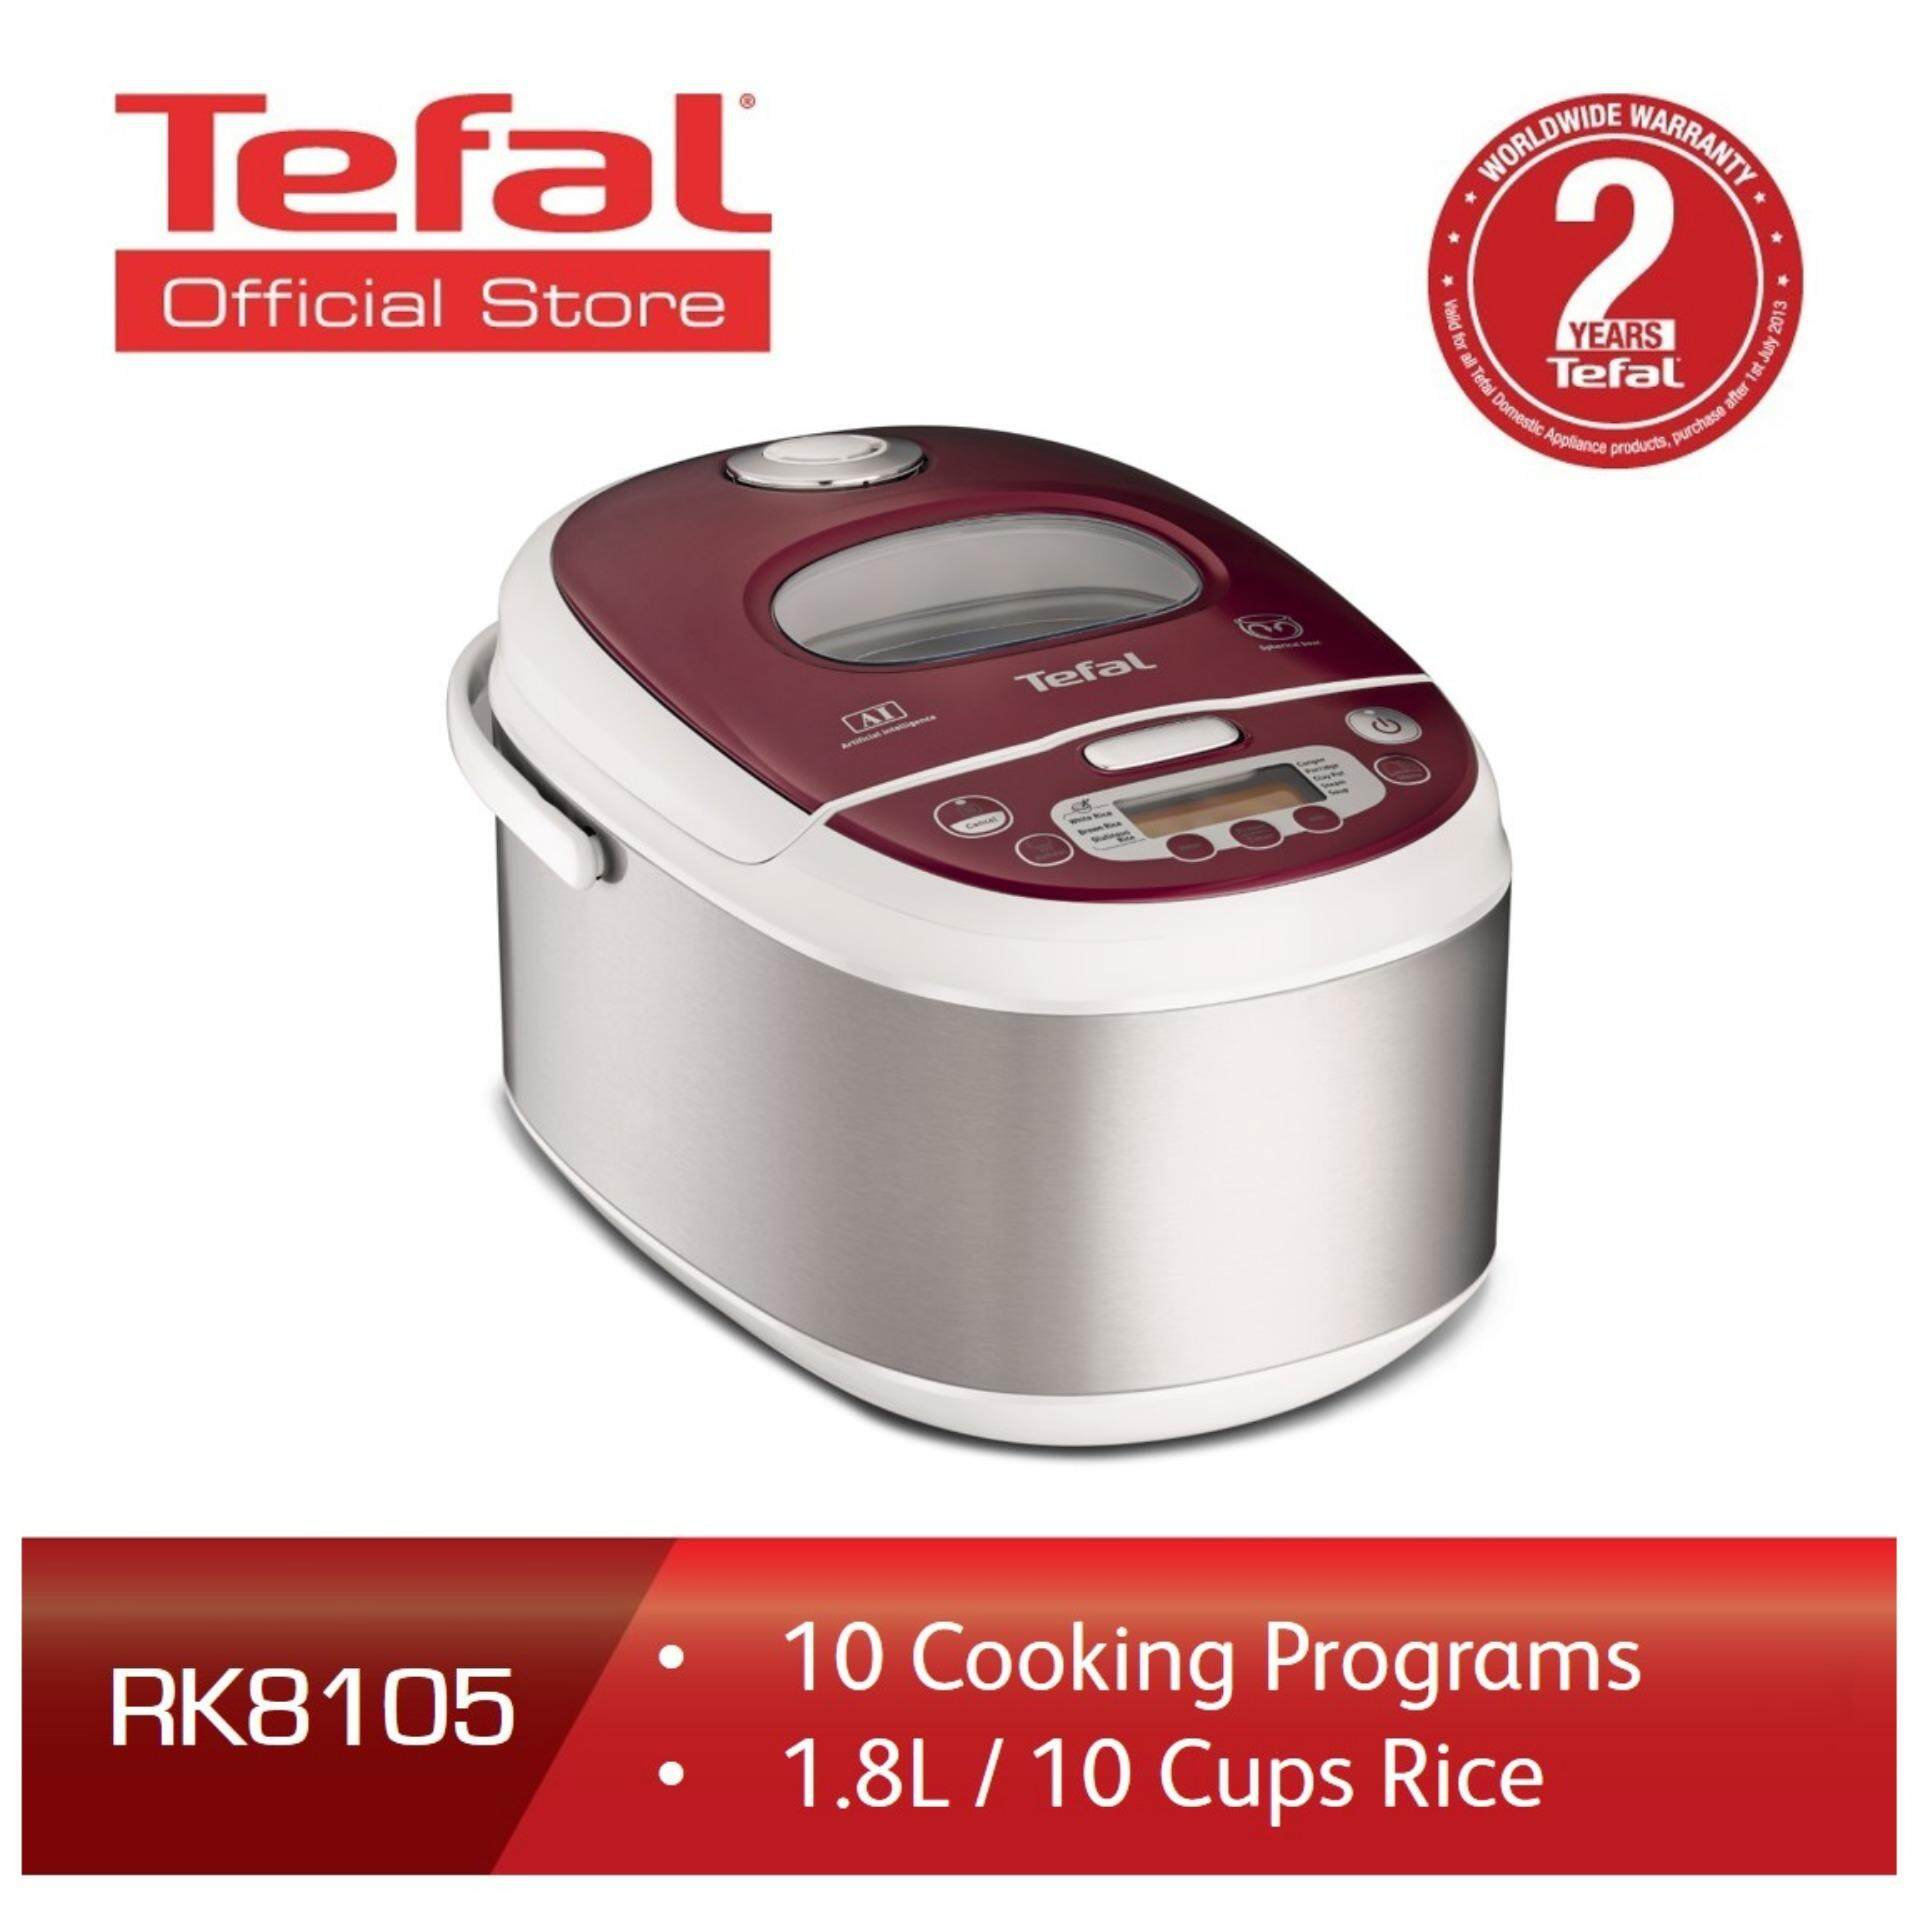 RK8105- Tefal 6 layer Spherical Pot Induction Rice Cooker 1.8L